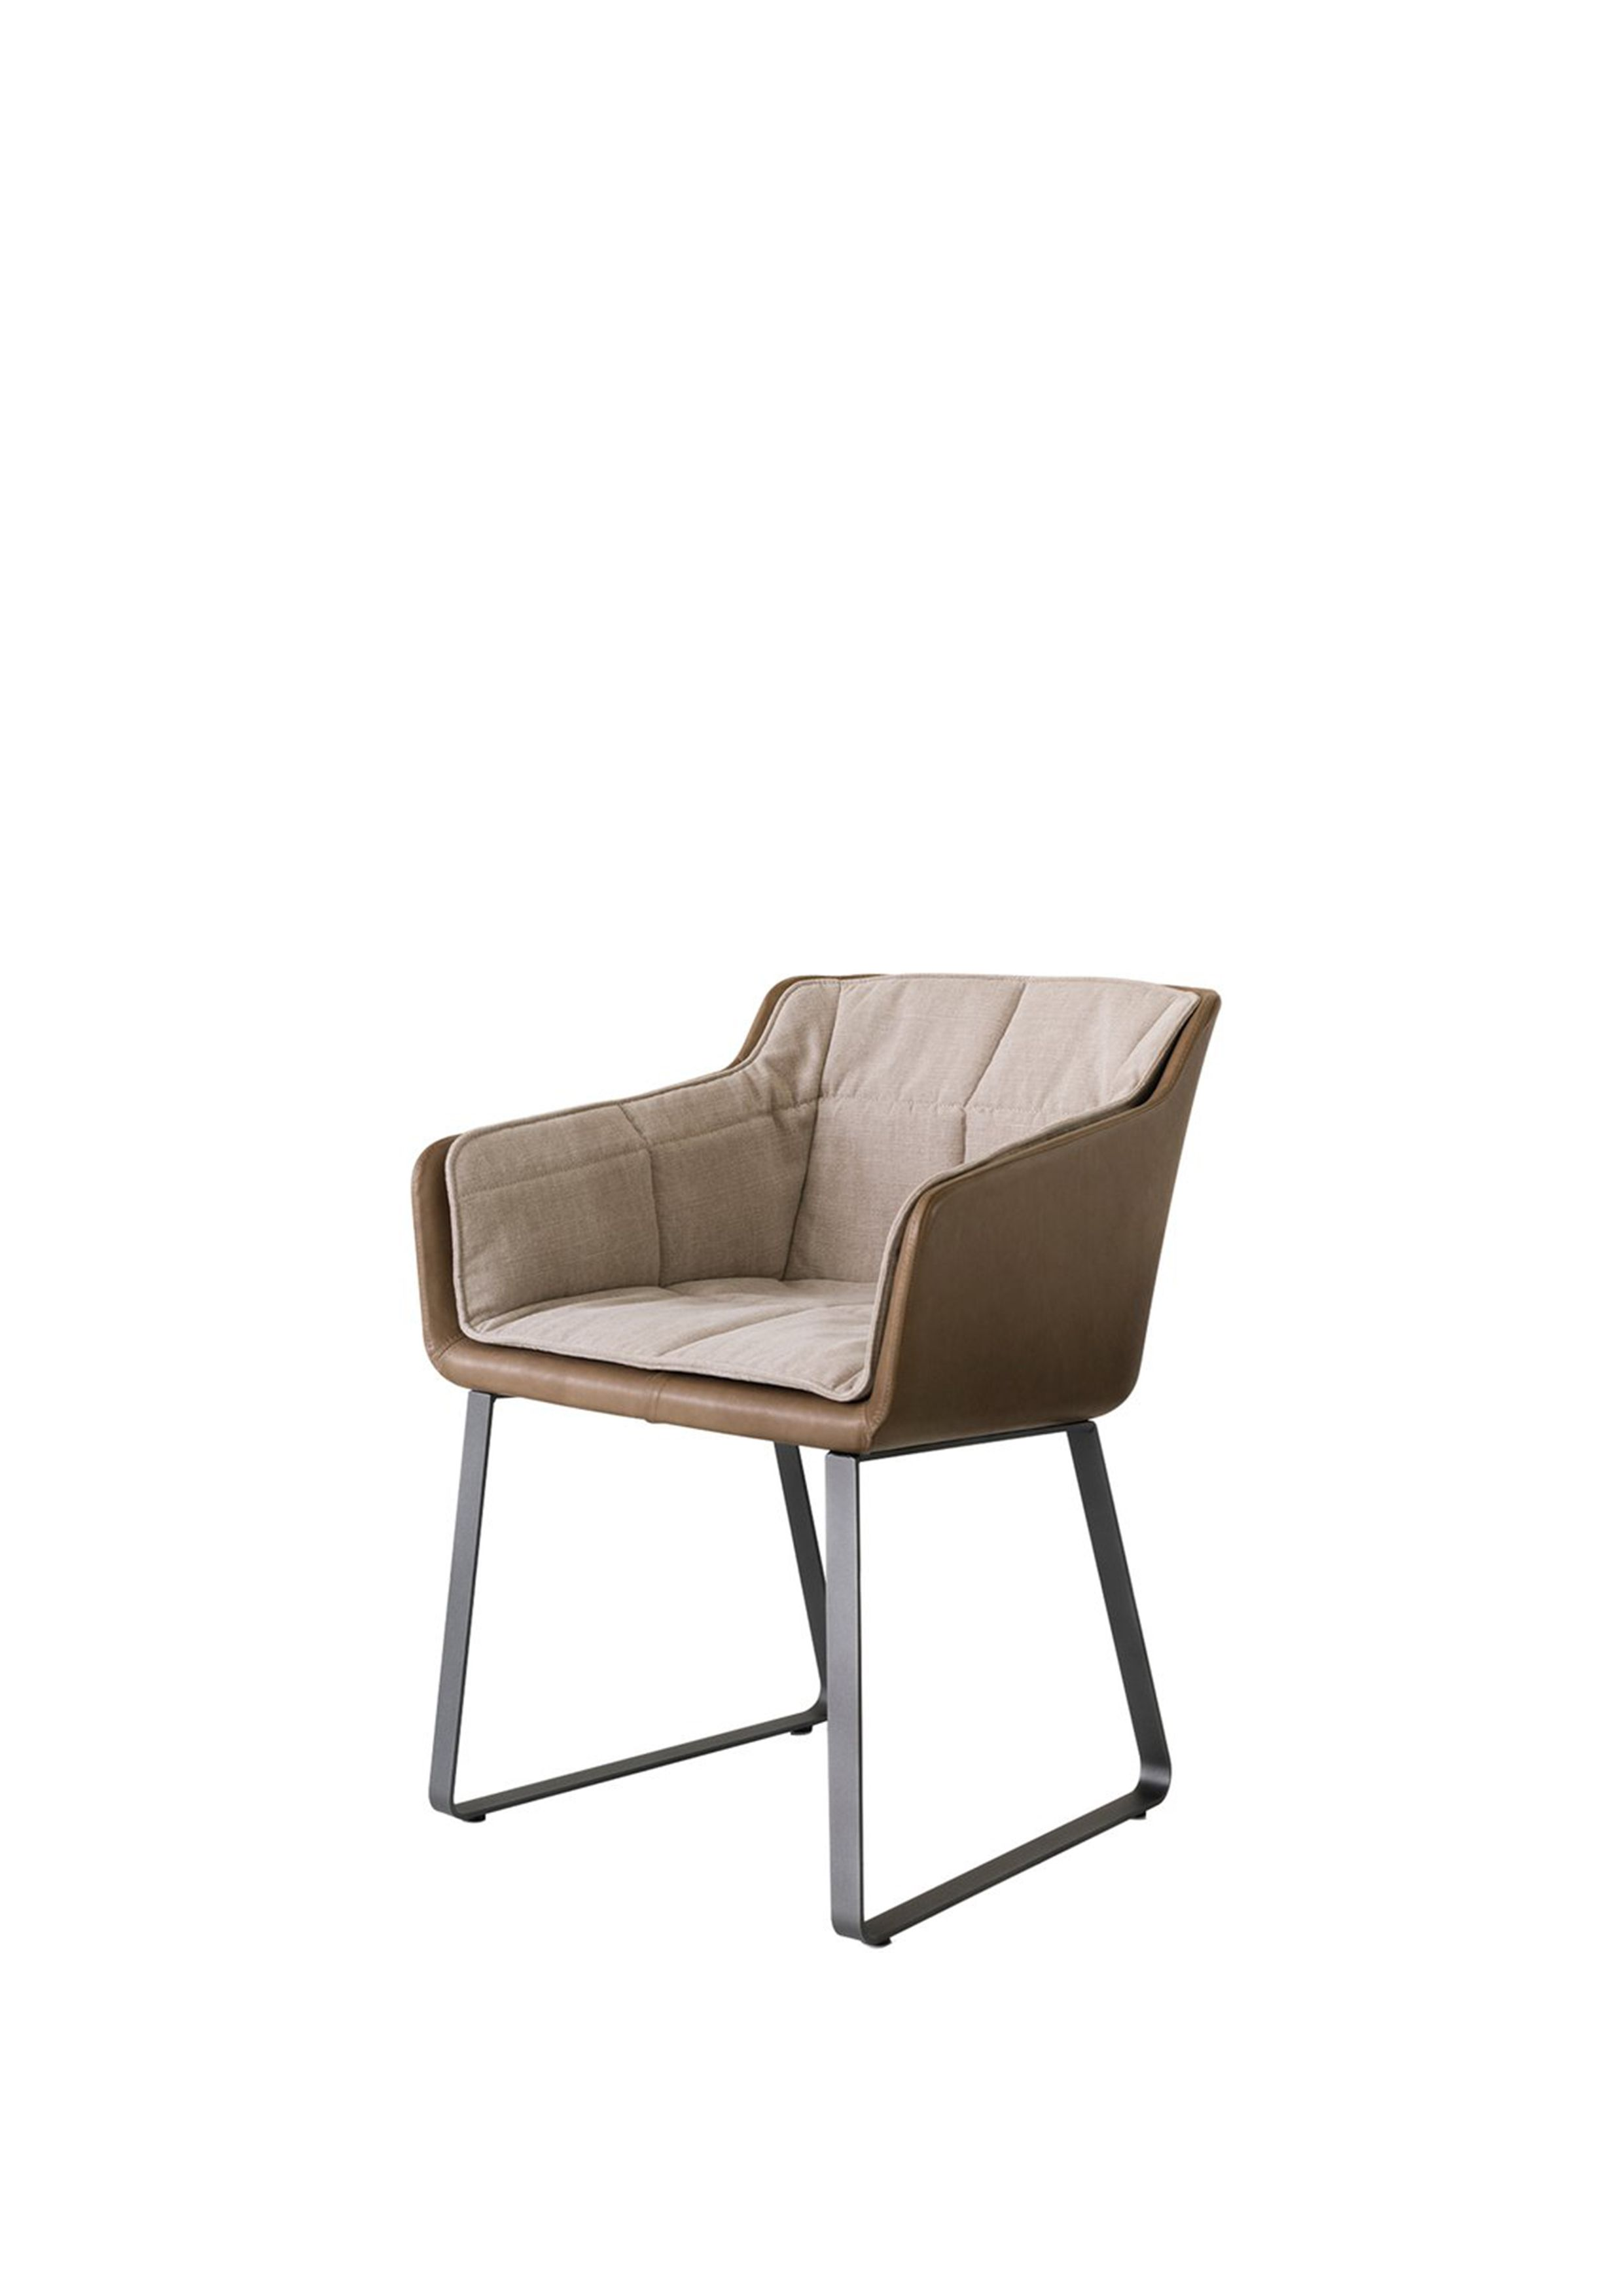 comfy chair. An elegant, curved shell, realized using